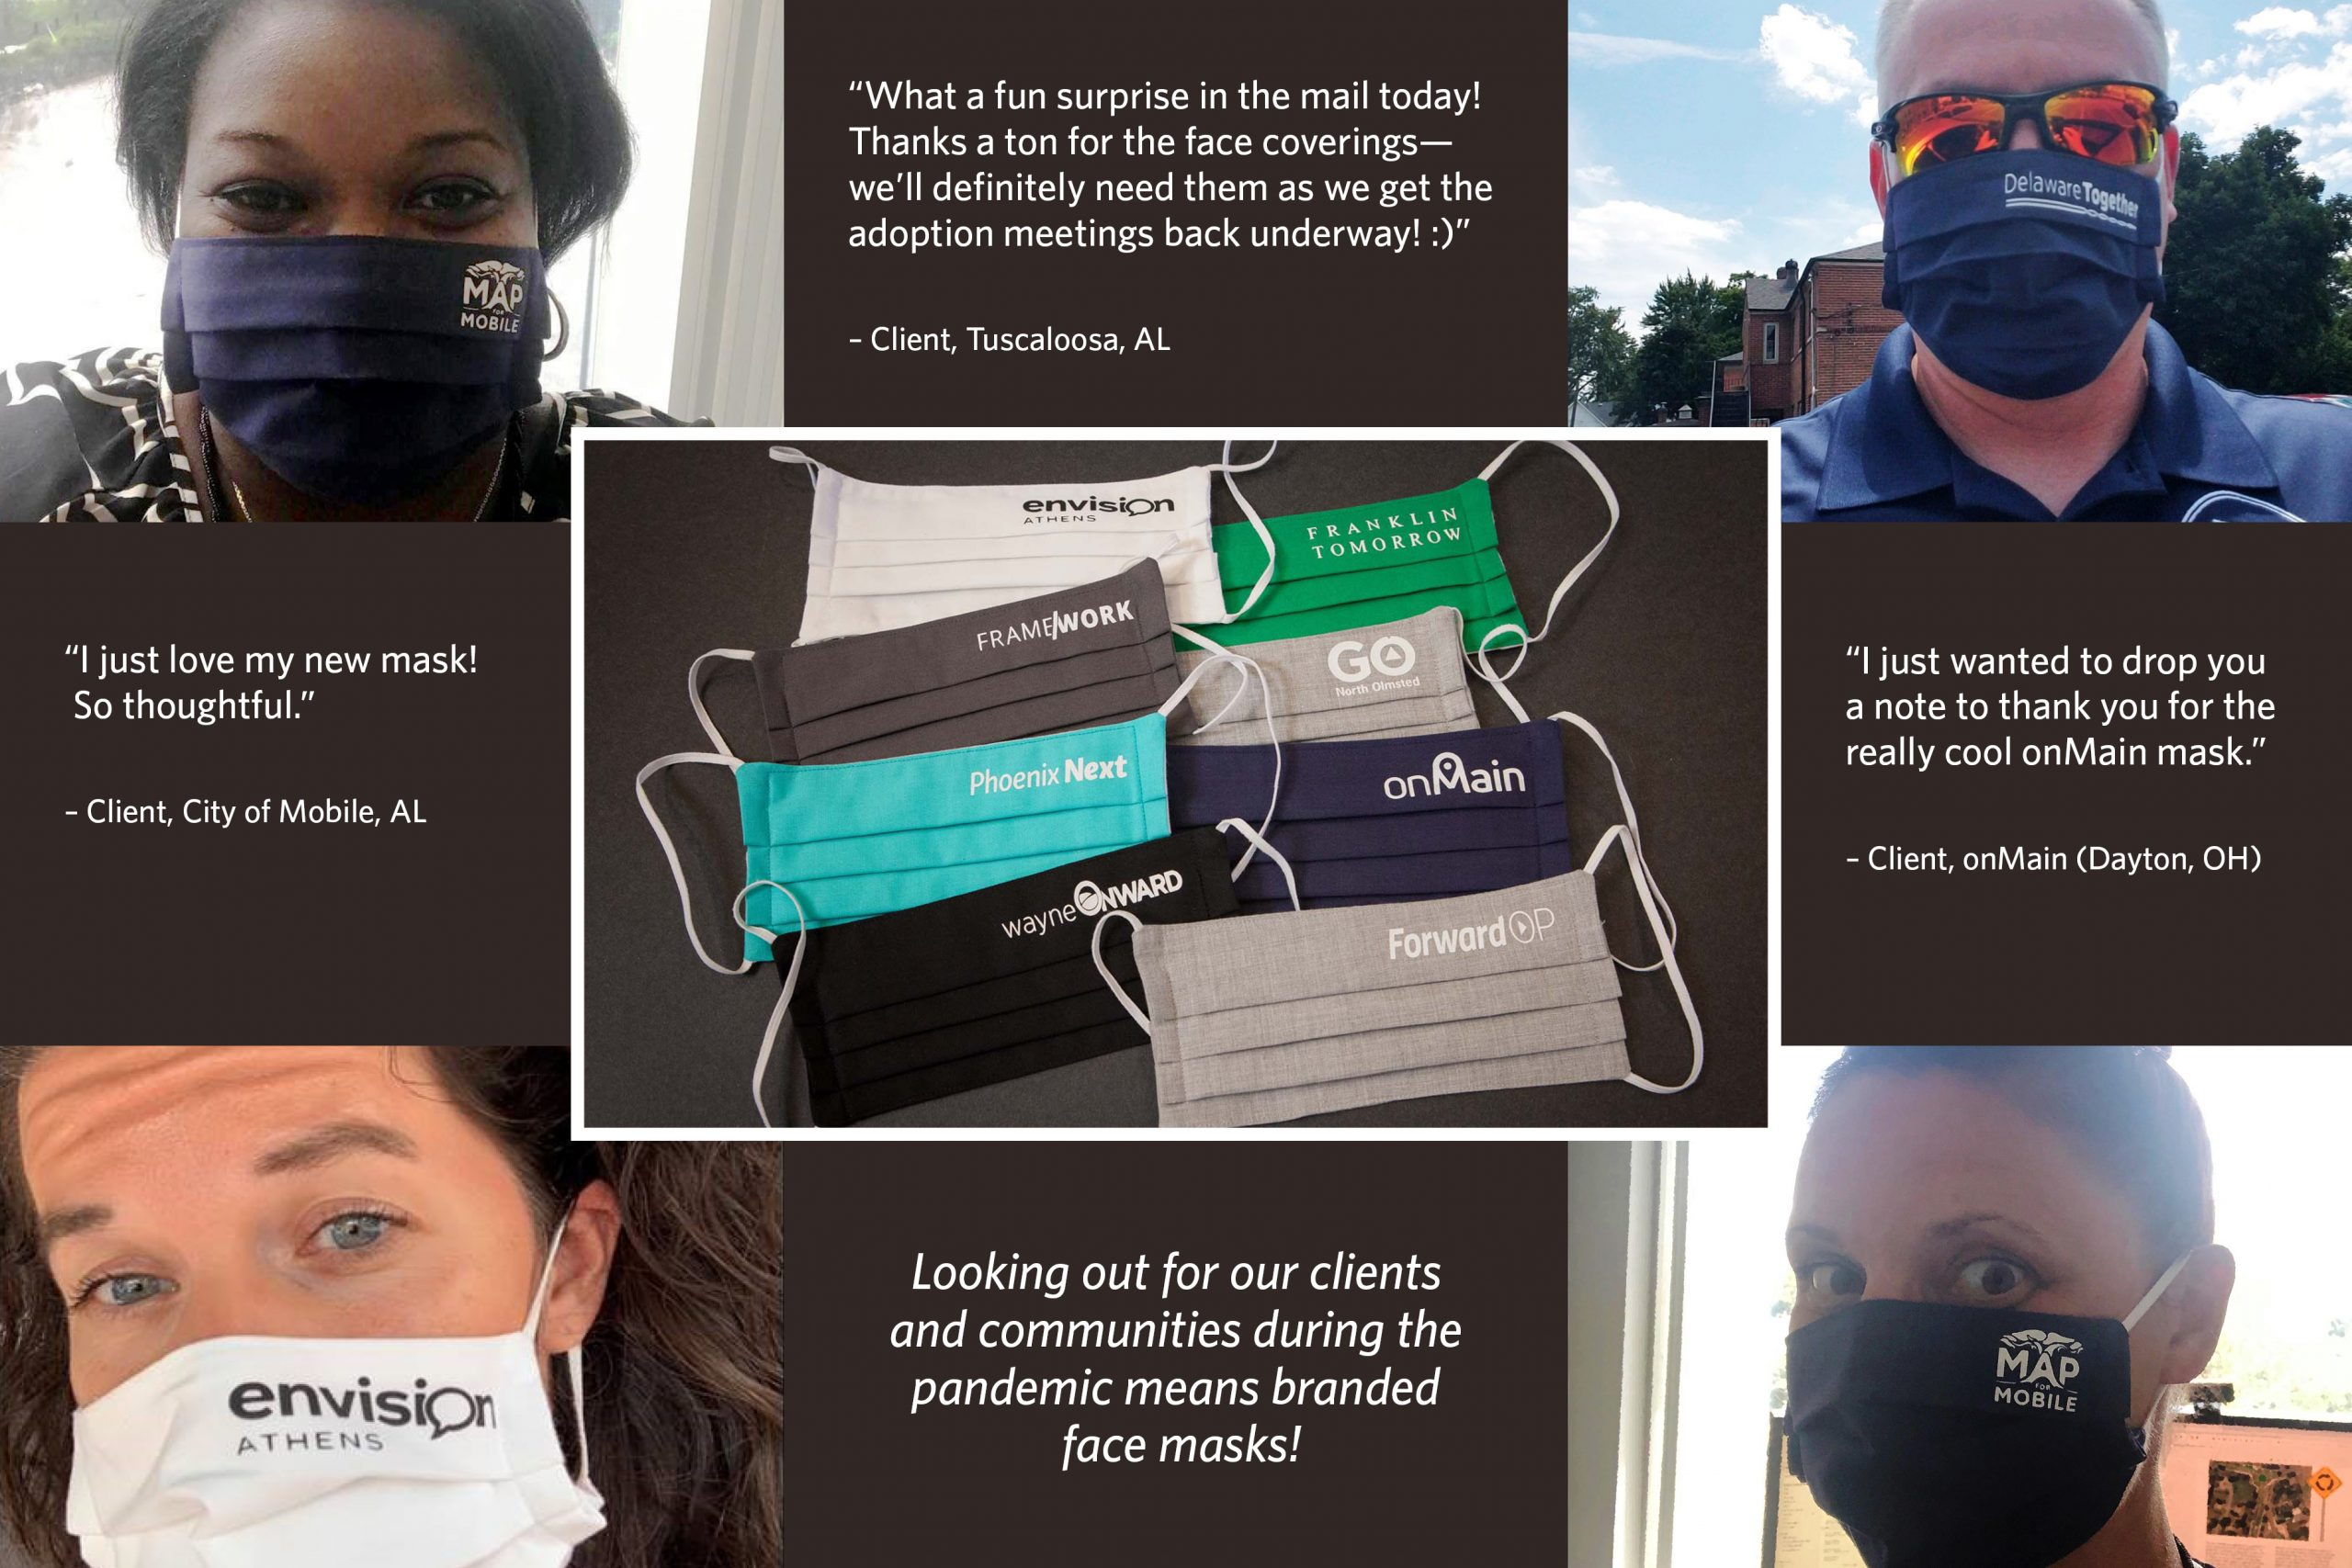 Clients wearing branded face masks